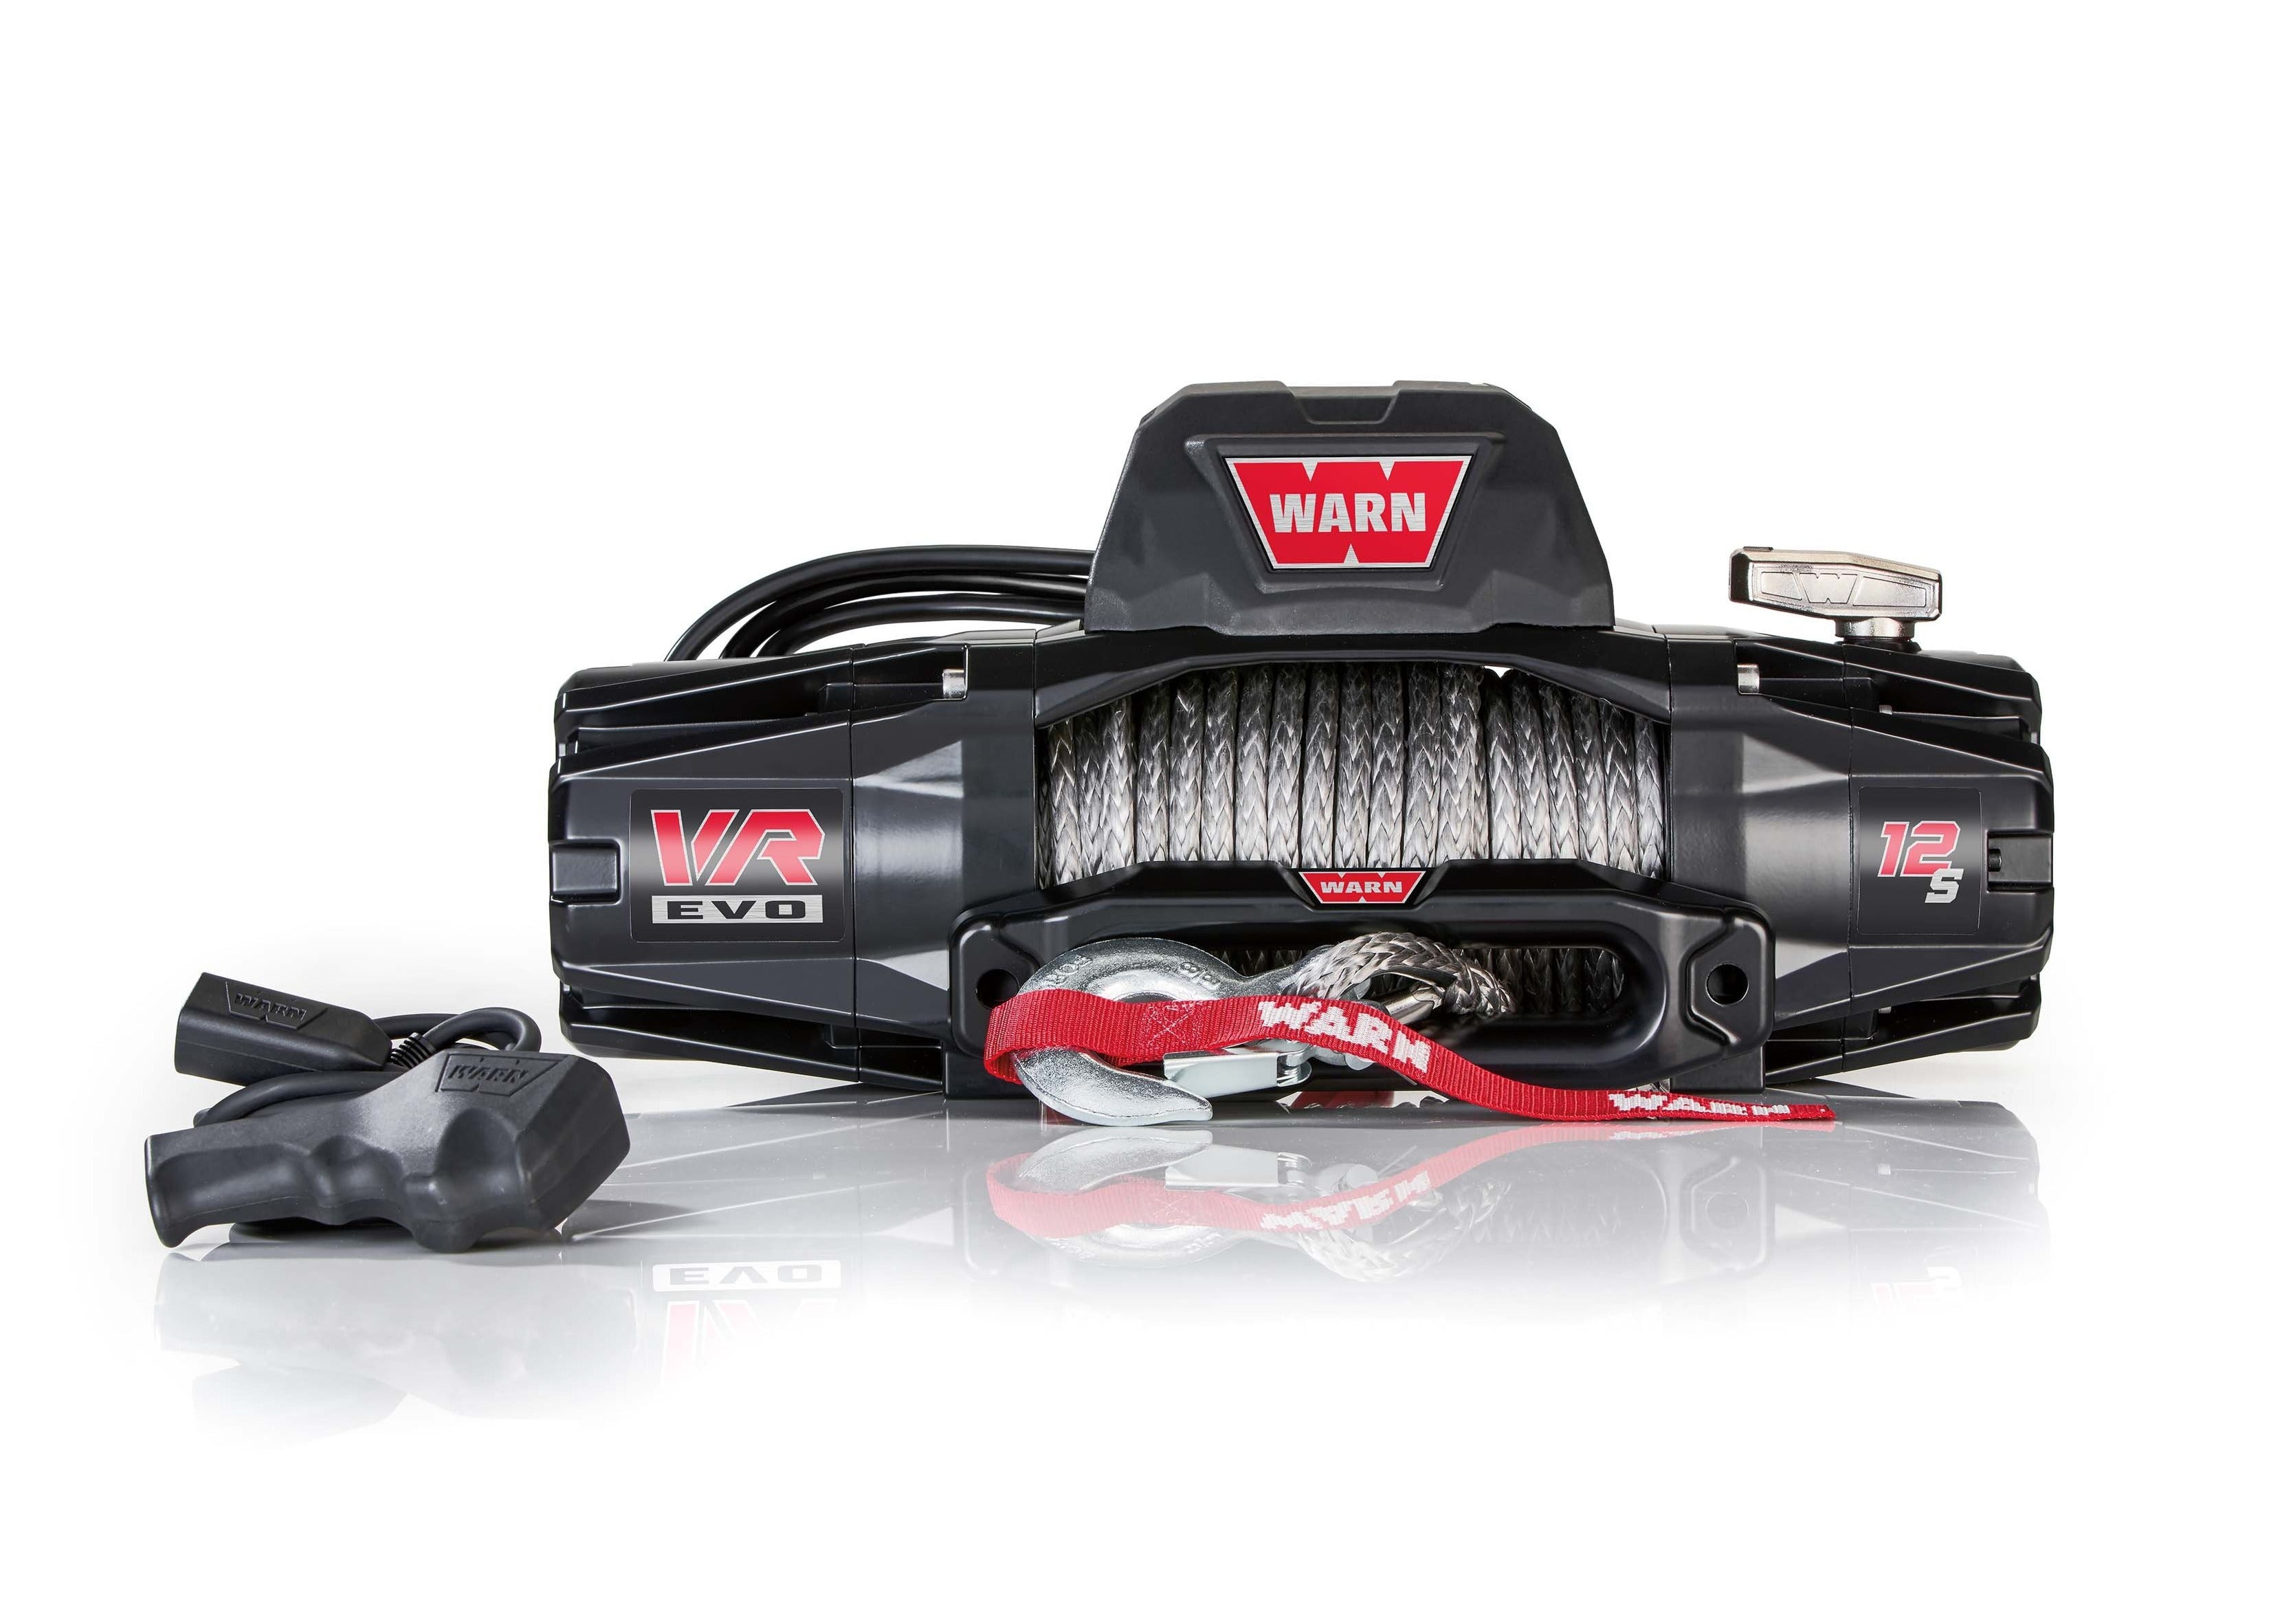 WARN VR EVO 12-S Winch